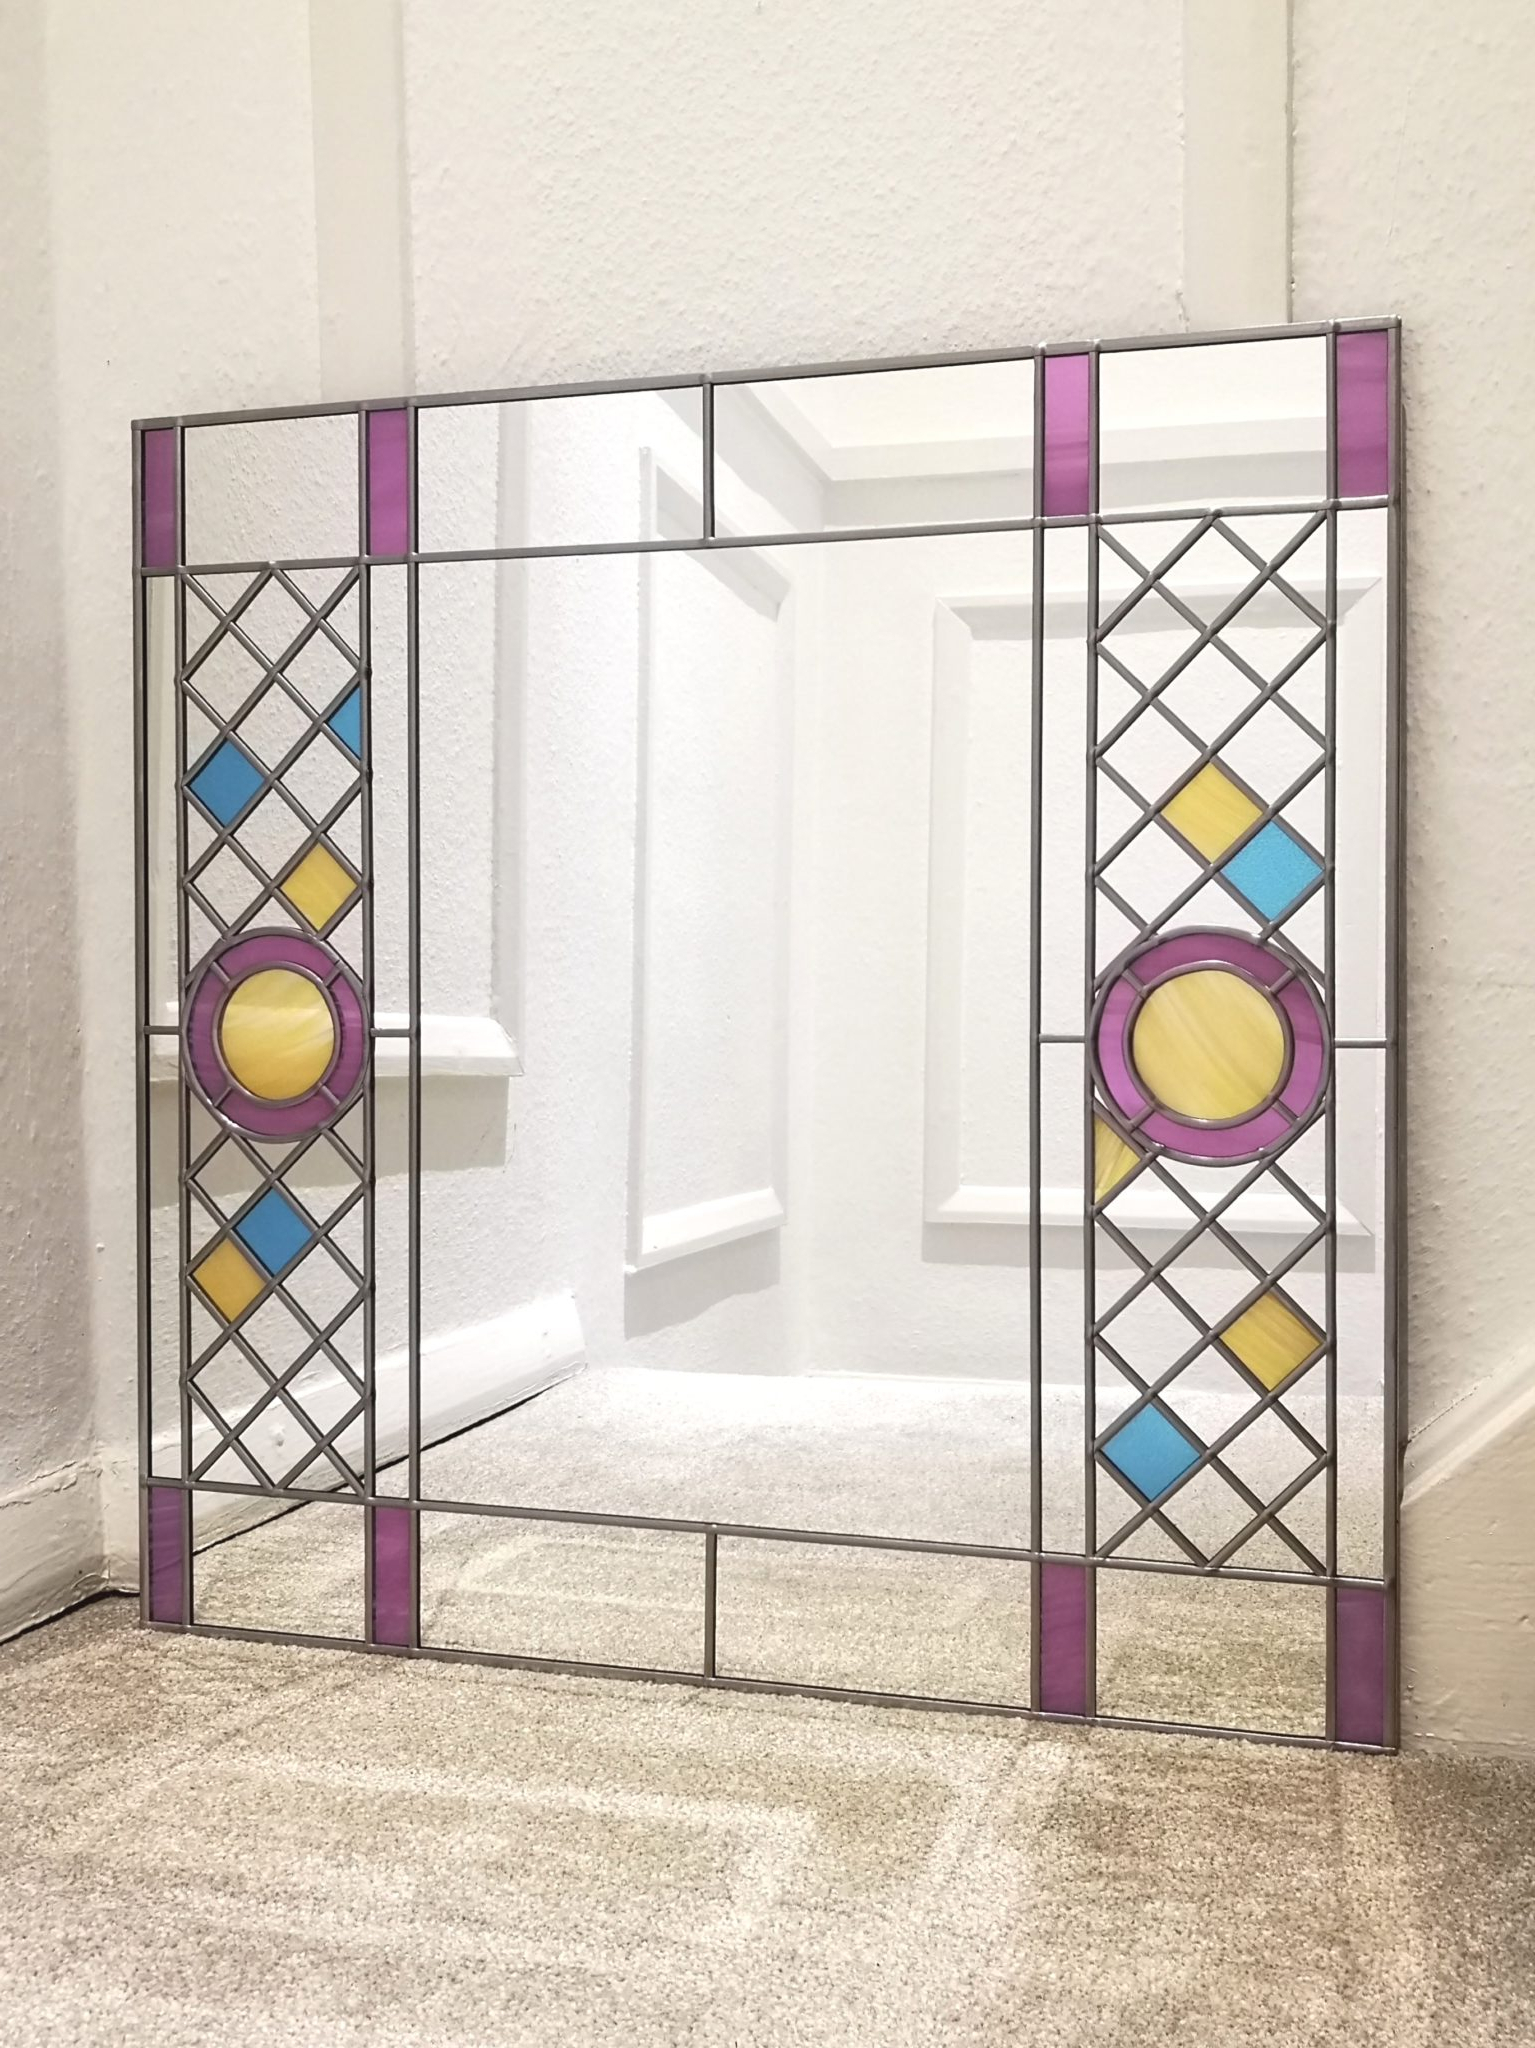 Gorgeous Long Glass Wall Mirror Bevelled Silver Mirrored Decor Large With Regard To Current Mercury Glass Wall Mirrors (View 9 of 20)